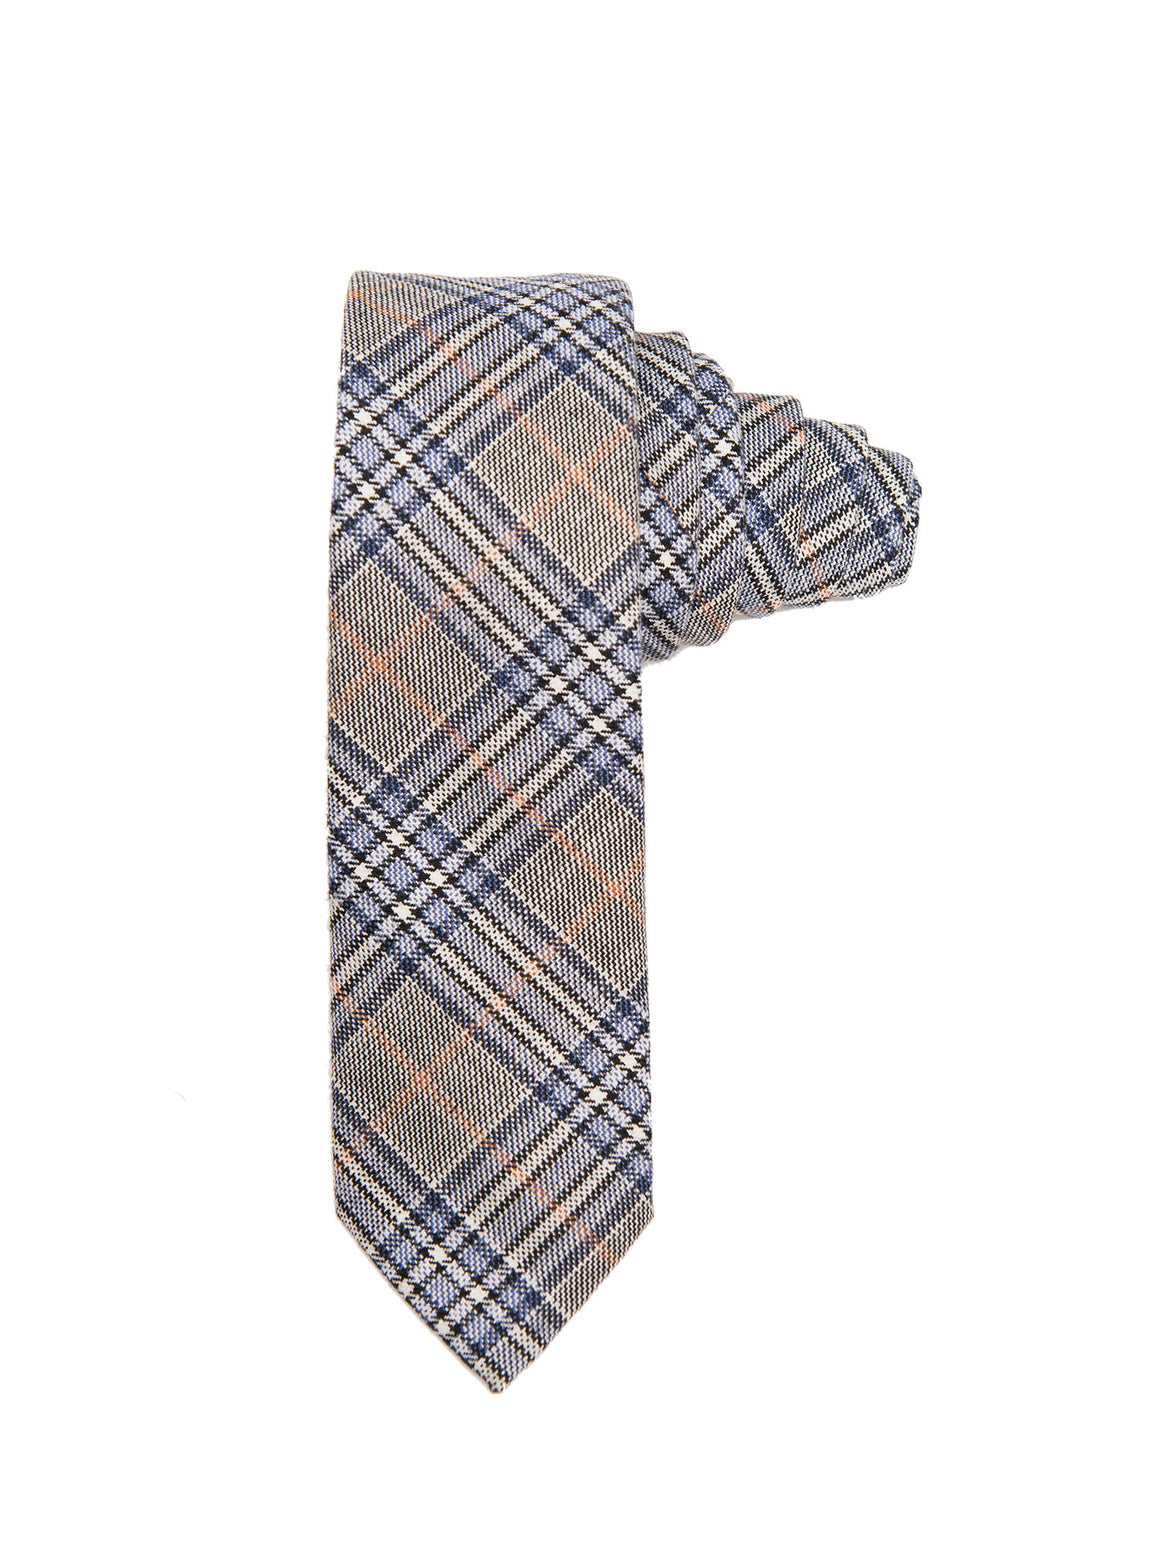 Slim Tie - Blue Grey Plaid